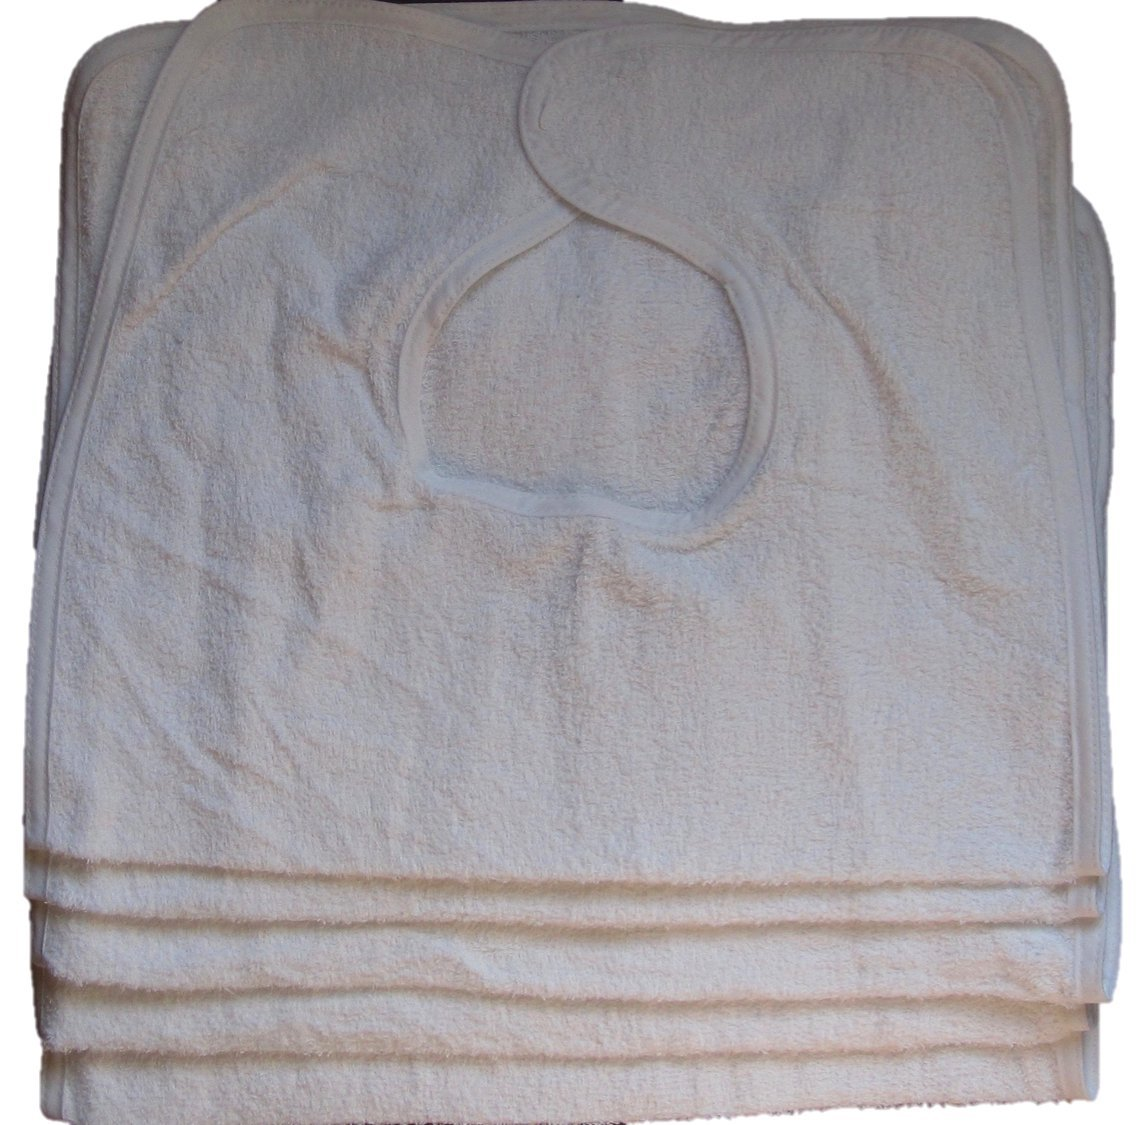 Adult Terry Cloth Bibs with Velcro Closure (5 - Pack) 100% Cotton (White) 18'' x 30''